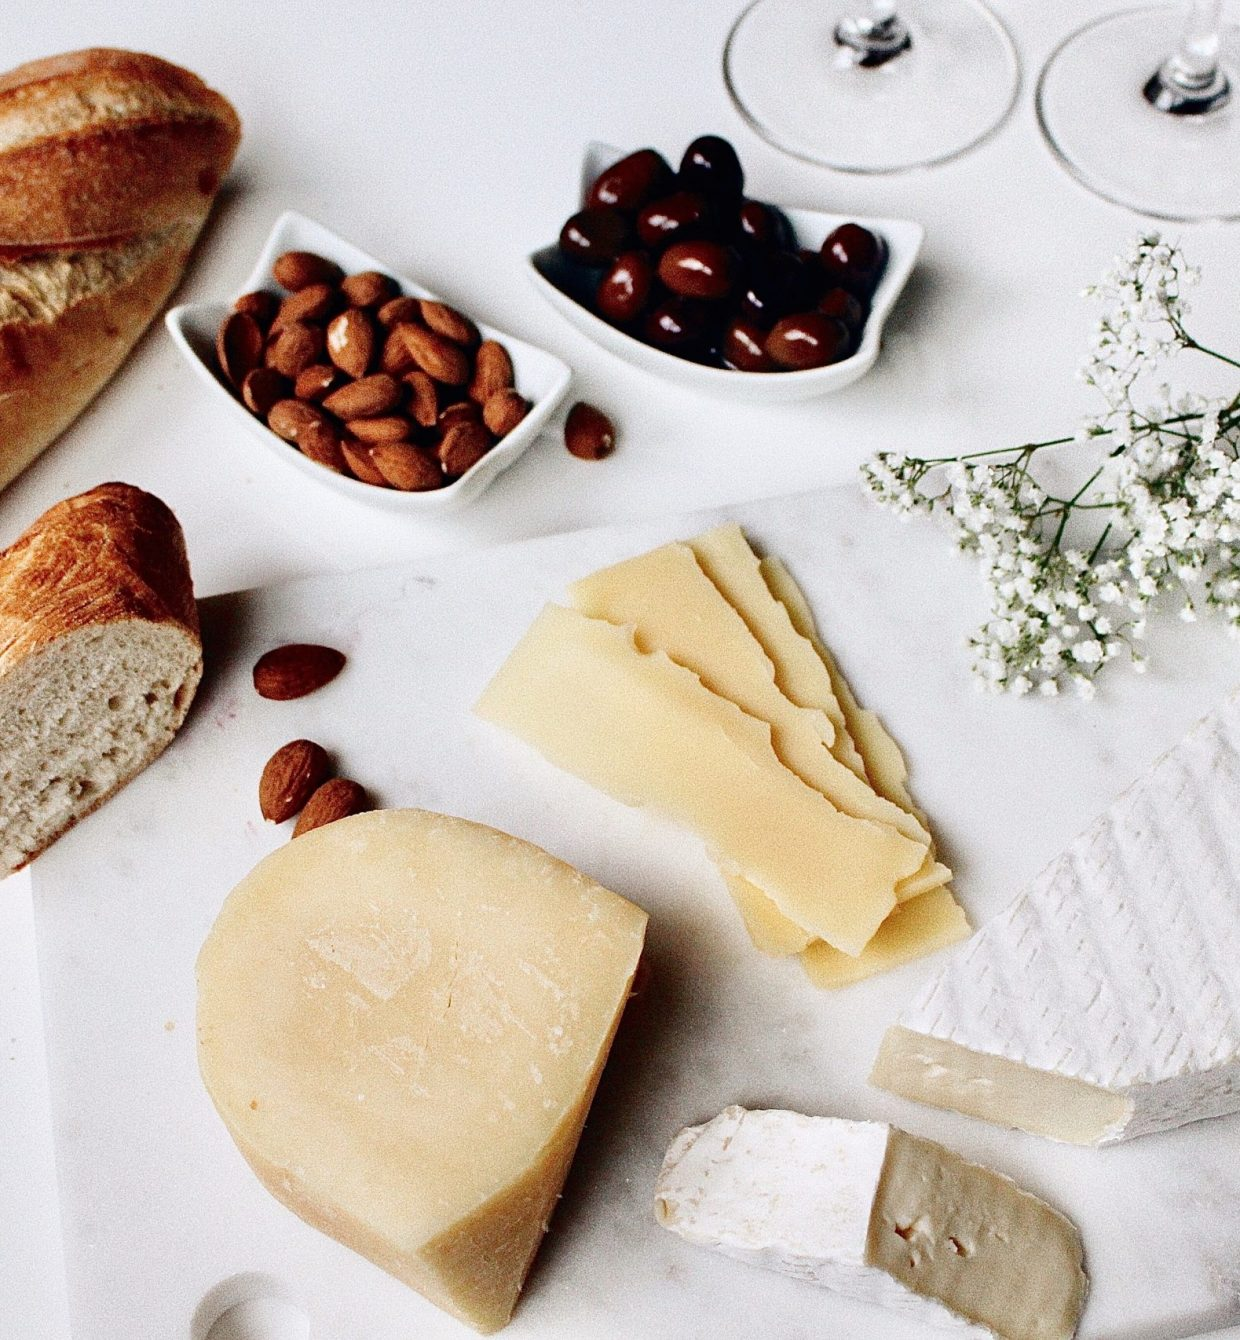 The perfect cheese plate for any occasion.